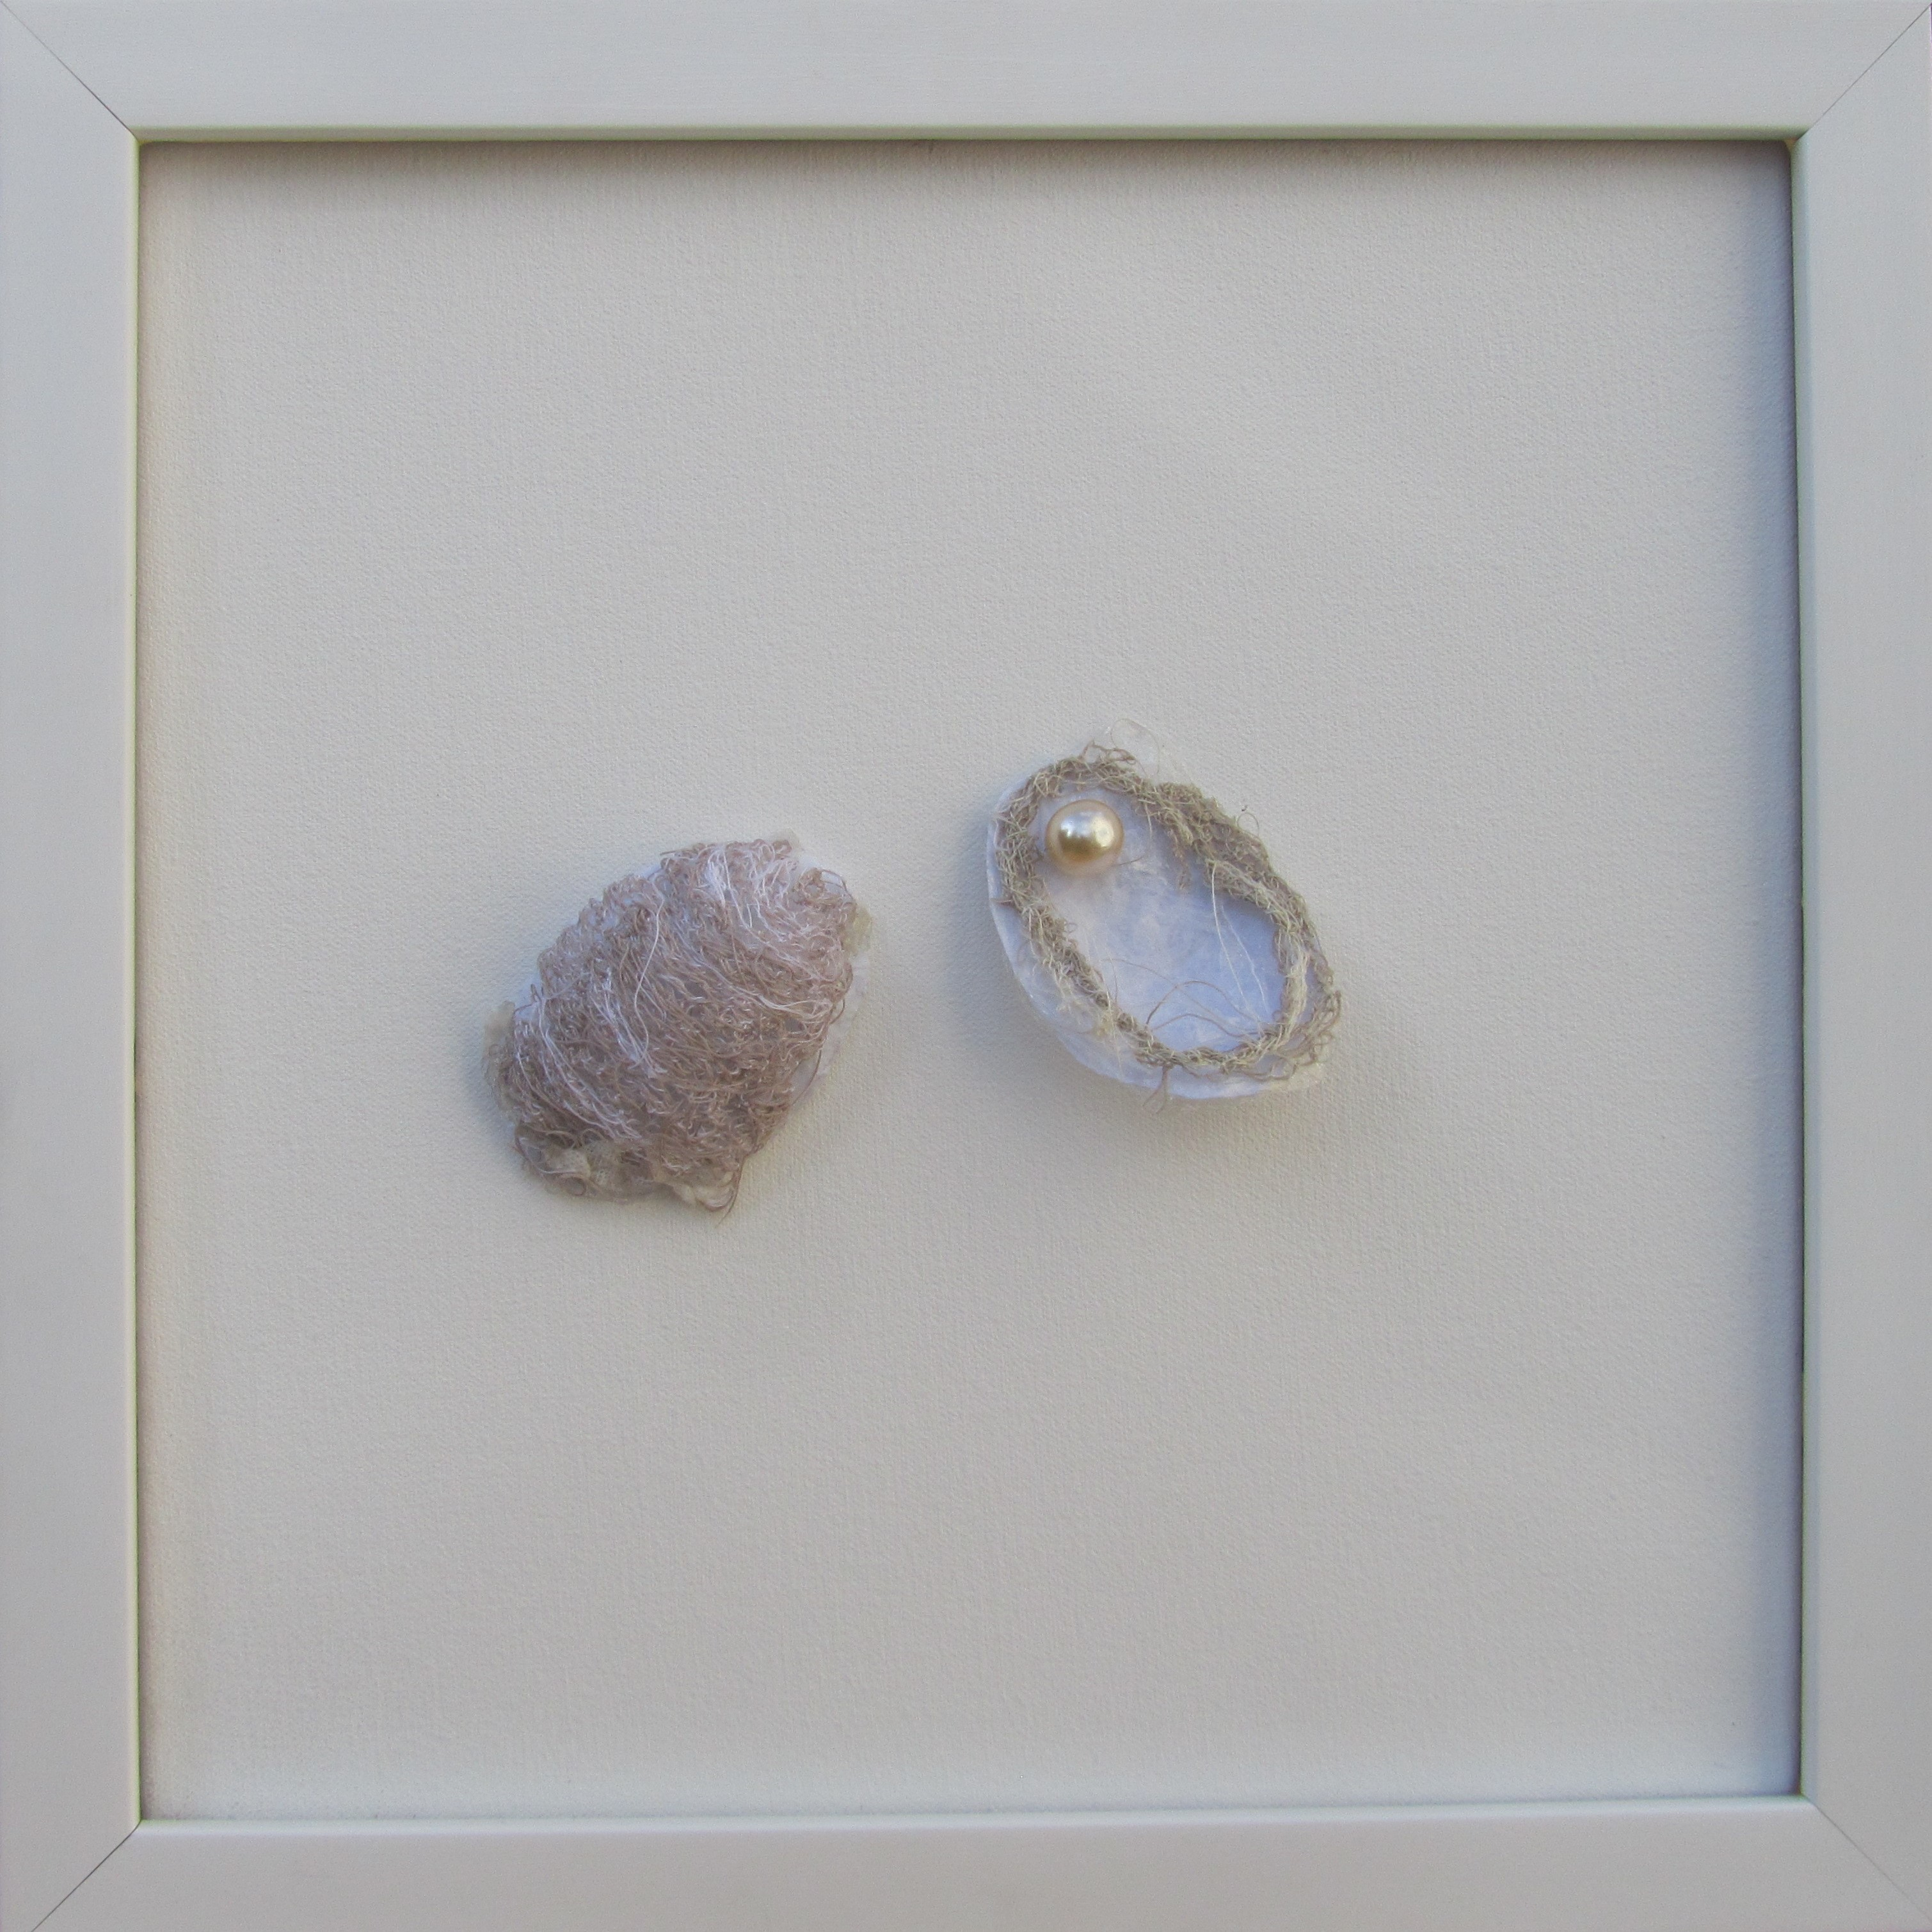 Oyster shells CE ASM 18